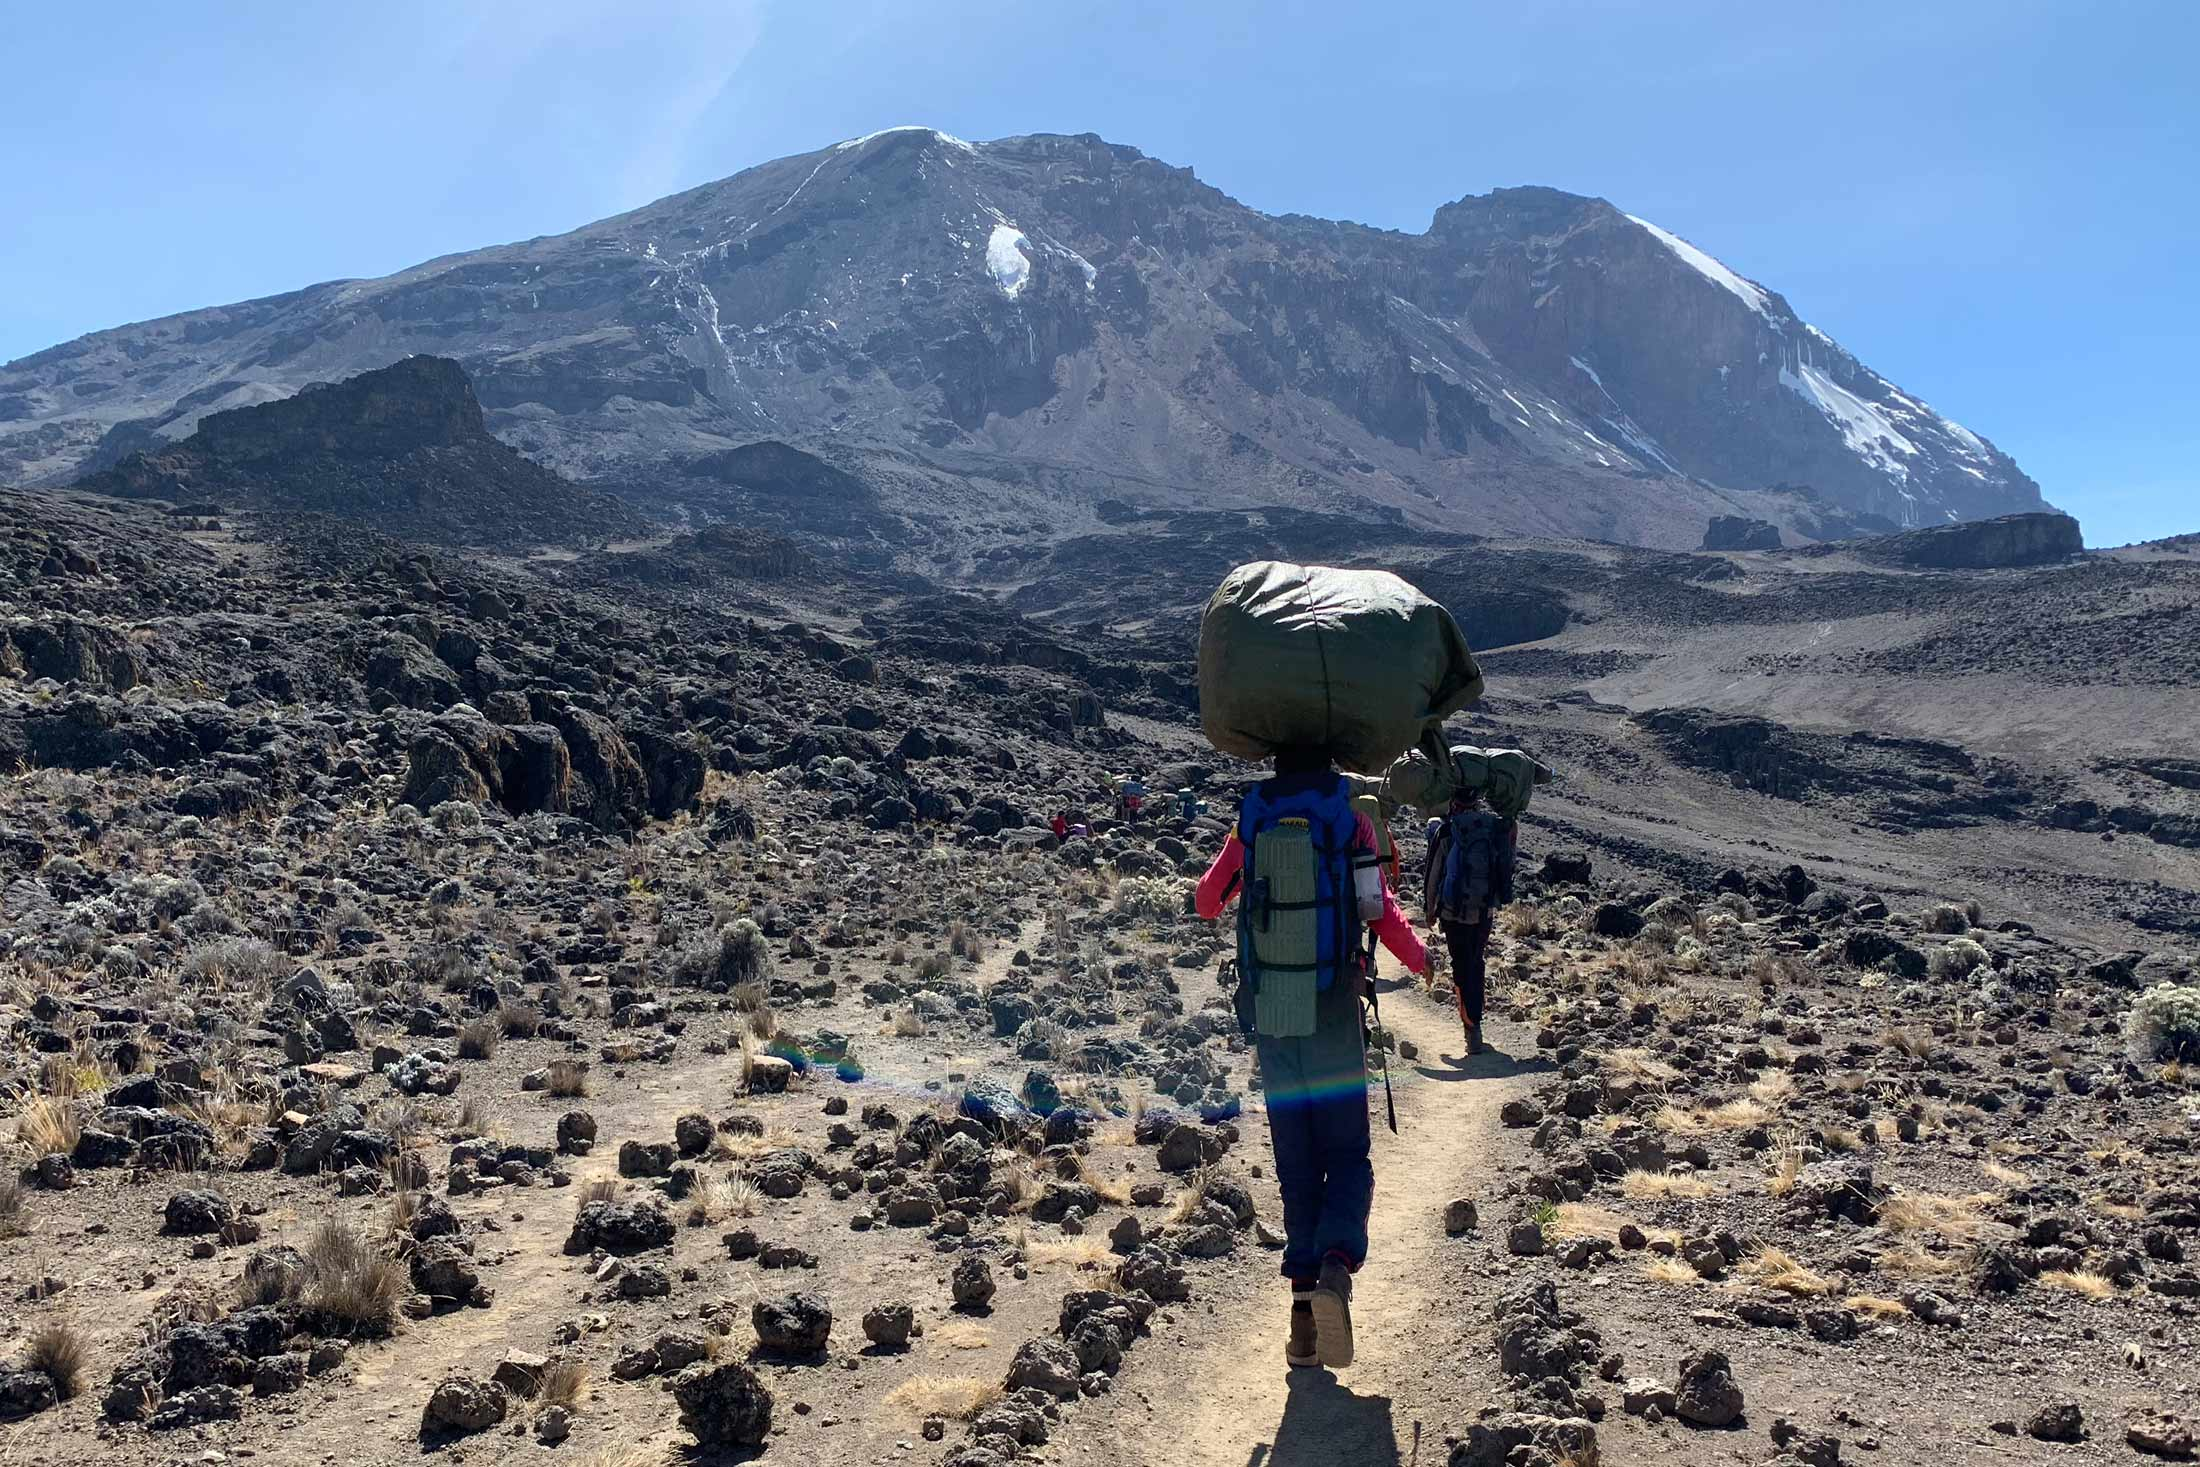 John Mina with Mount Kilimanjaro